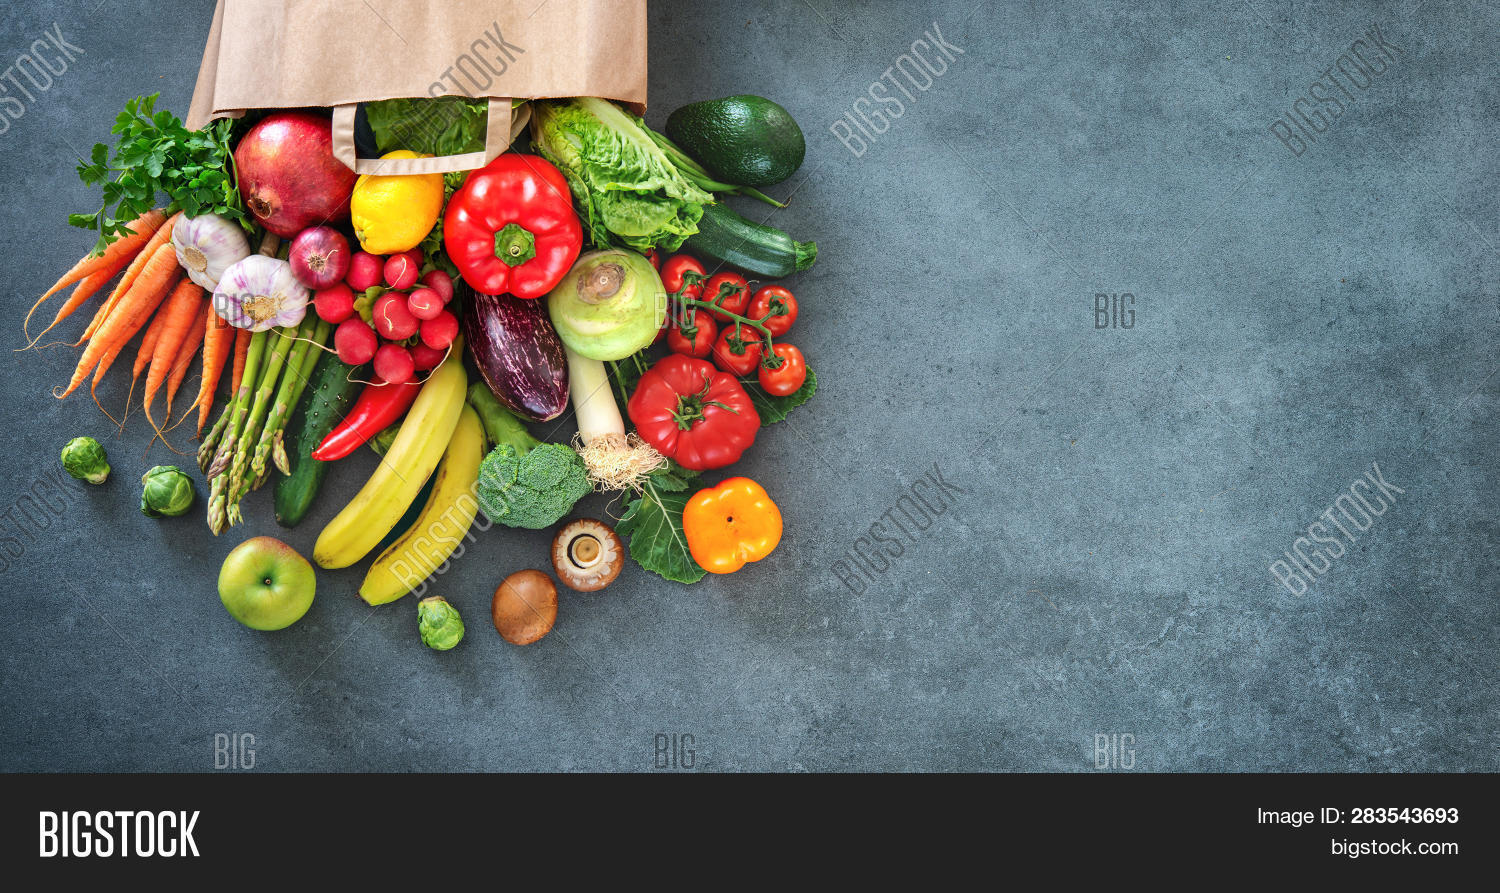 Healthy Food Selection Image Photo Free Trial Bigstock